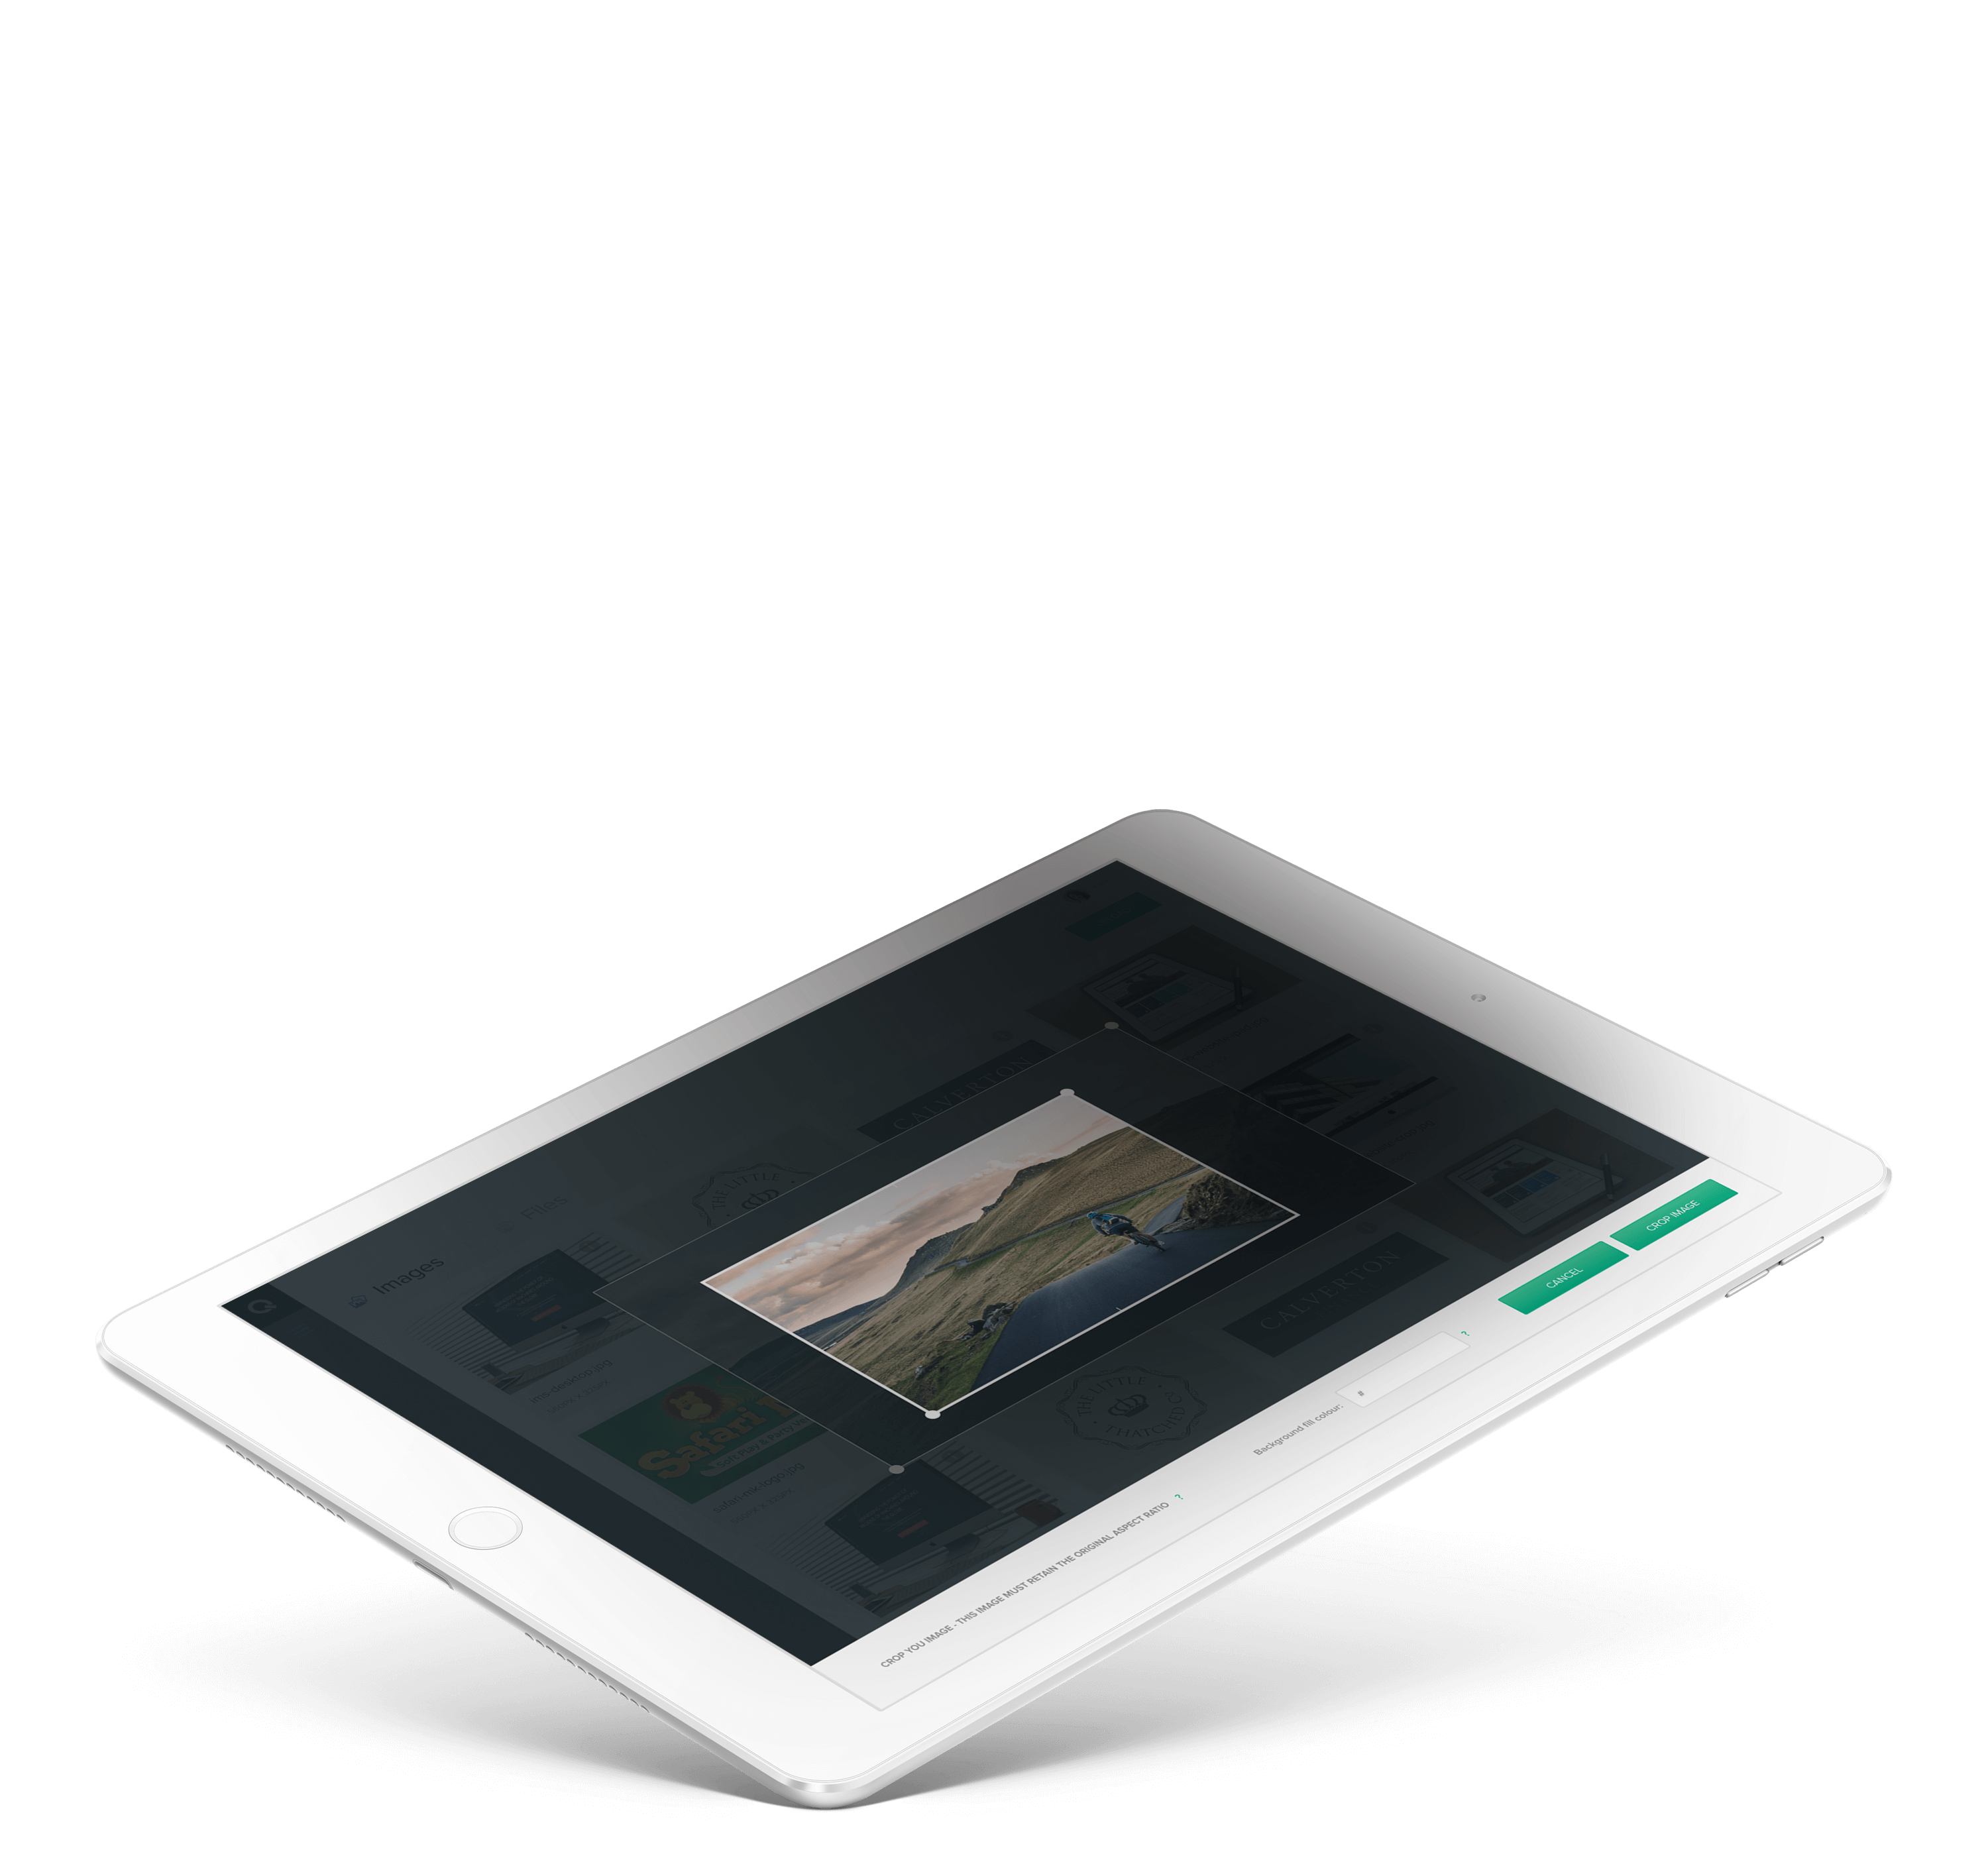 UI design on tablet mock up